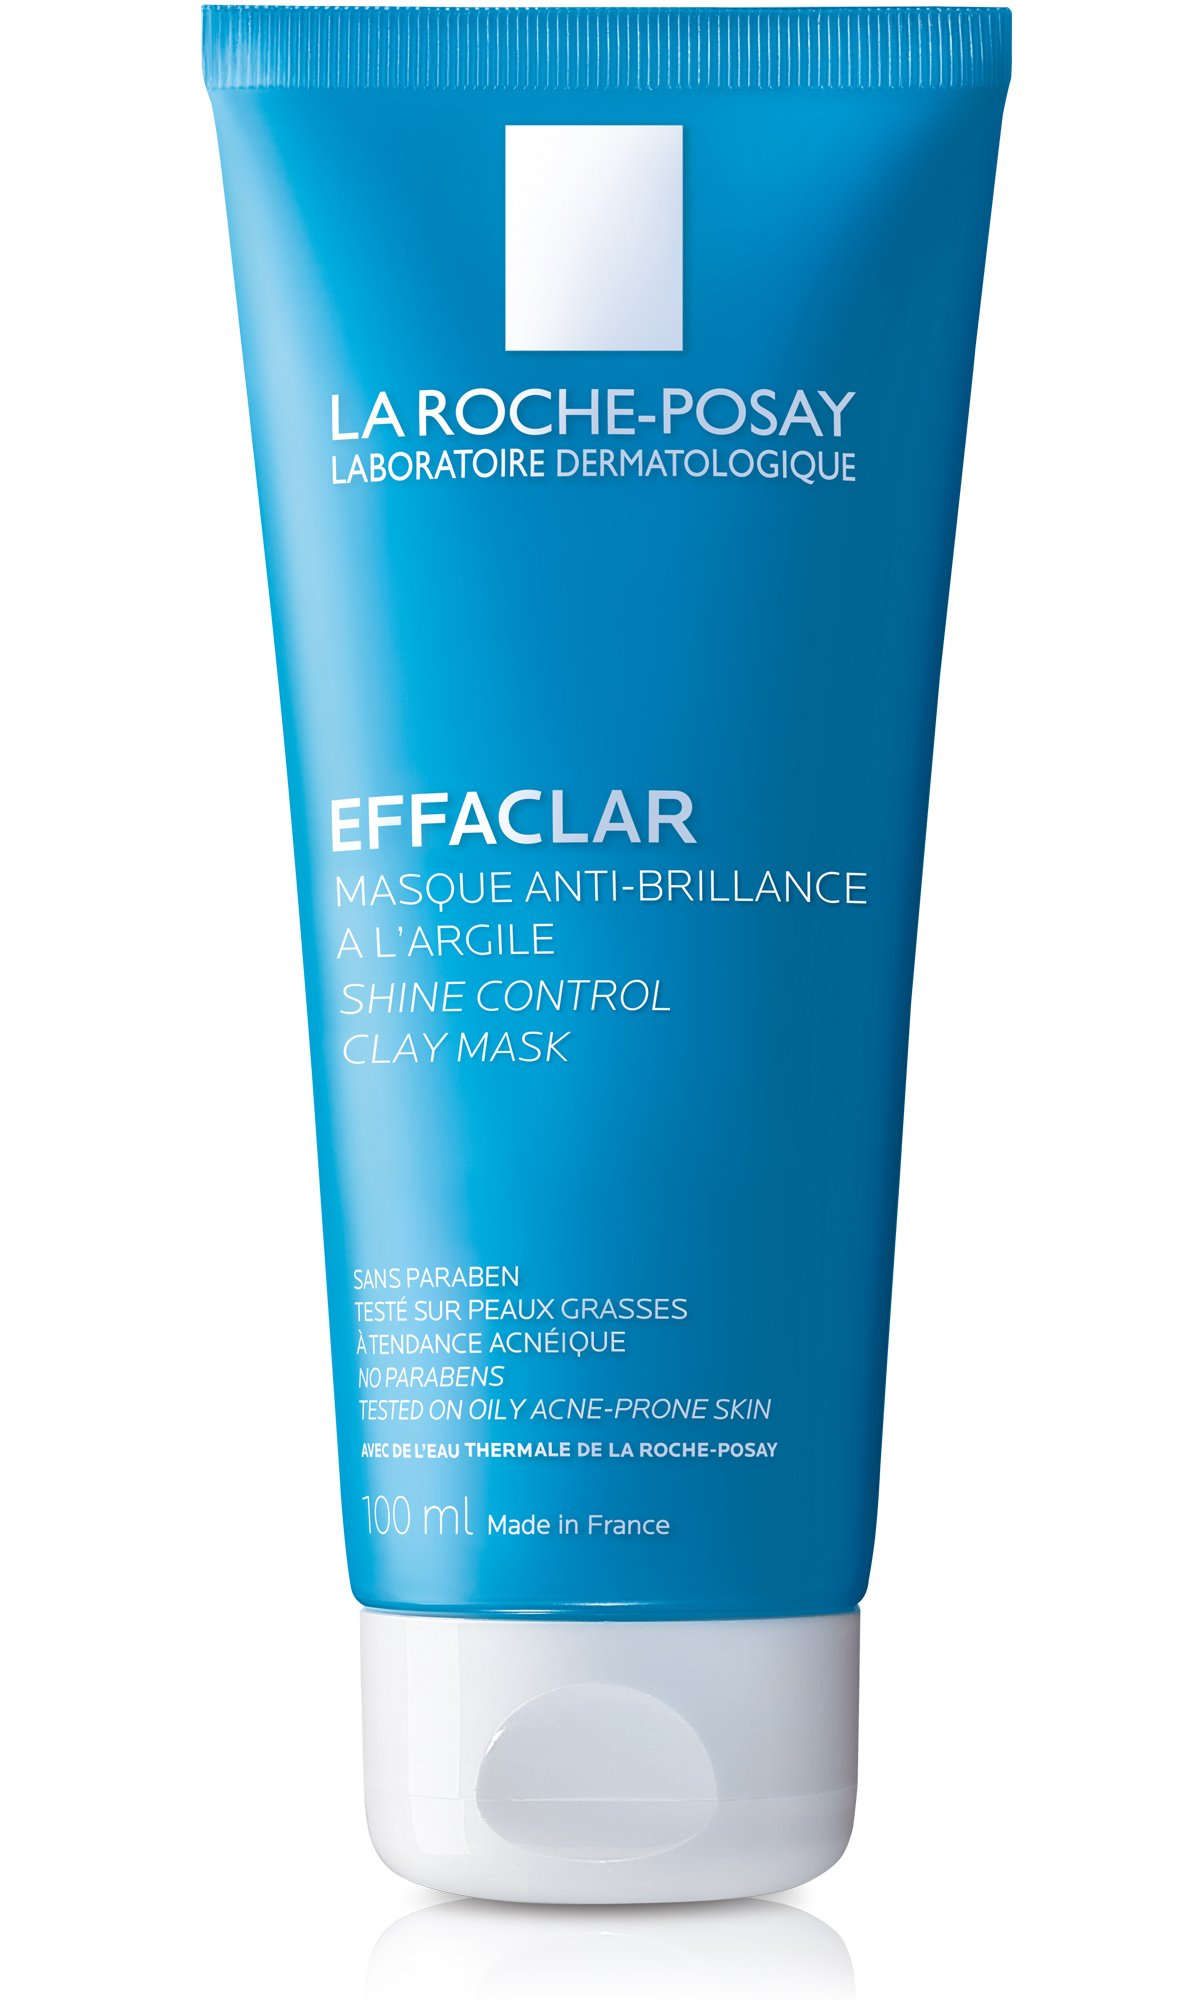 La Roche-Posay Effaclar Clarifying Clay Face Mask for Oily Skin, 3.38 Fl. Oz.